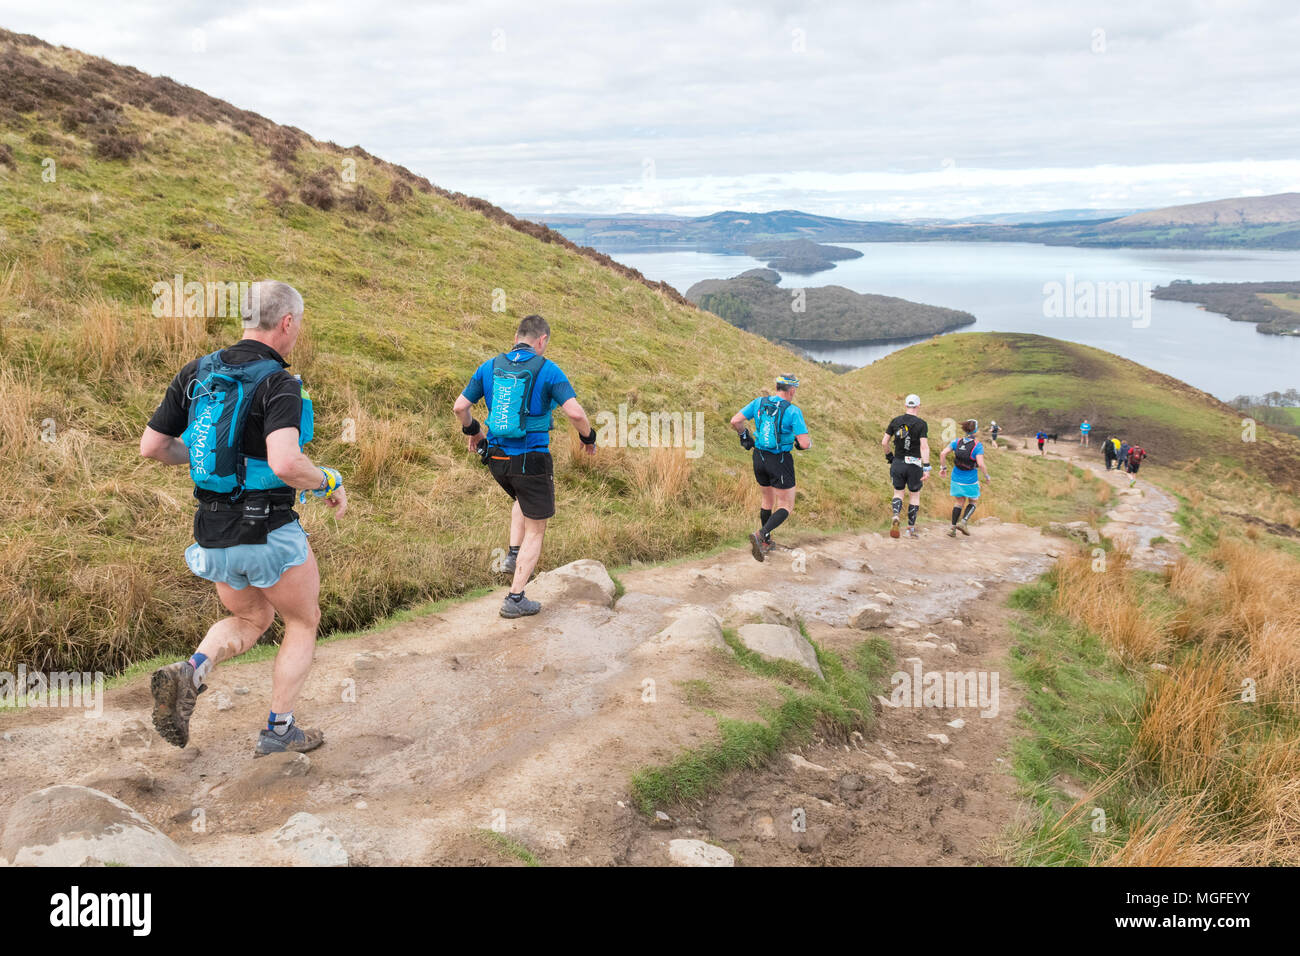 Conic Hill, Loch Lomond, Scotland, UK - 28 April 2018: The Highland Fling Race 2018 - competitors decending Conic Hill  hopefully had the opportunity to take in the stunning views of Loch Lomond  ahead.  The 53 mile Ultra Marathon follows the route of the West Highland Way through Loch Lomond and the Trossachs National Park, from Milngavie to Tyndrum Credit: Kay Roxby/Alamy Live News - Stock Image